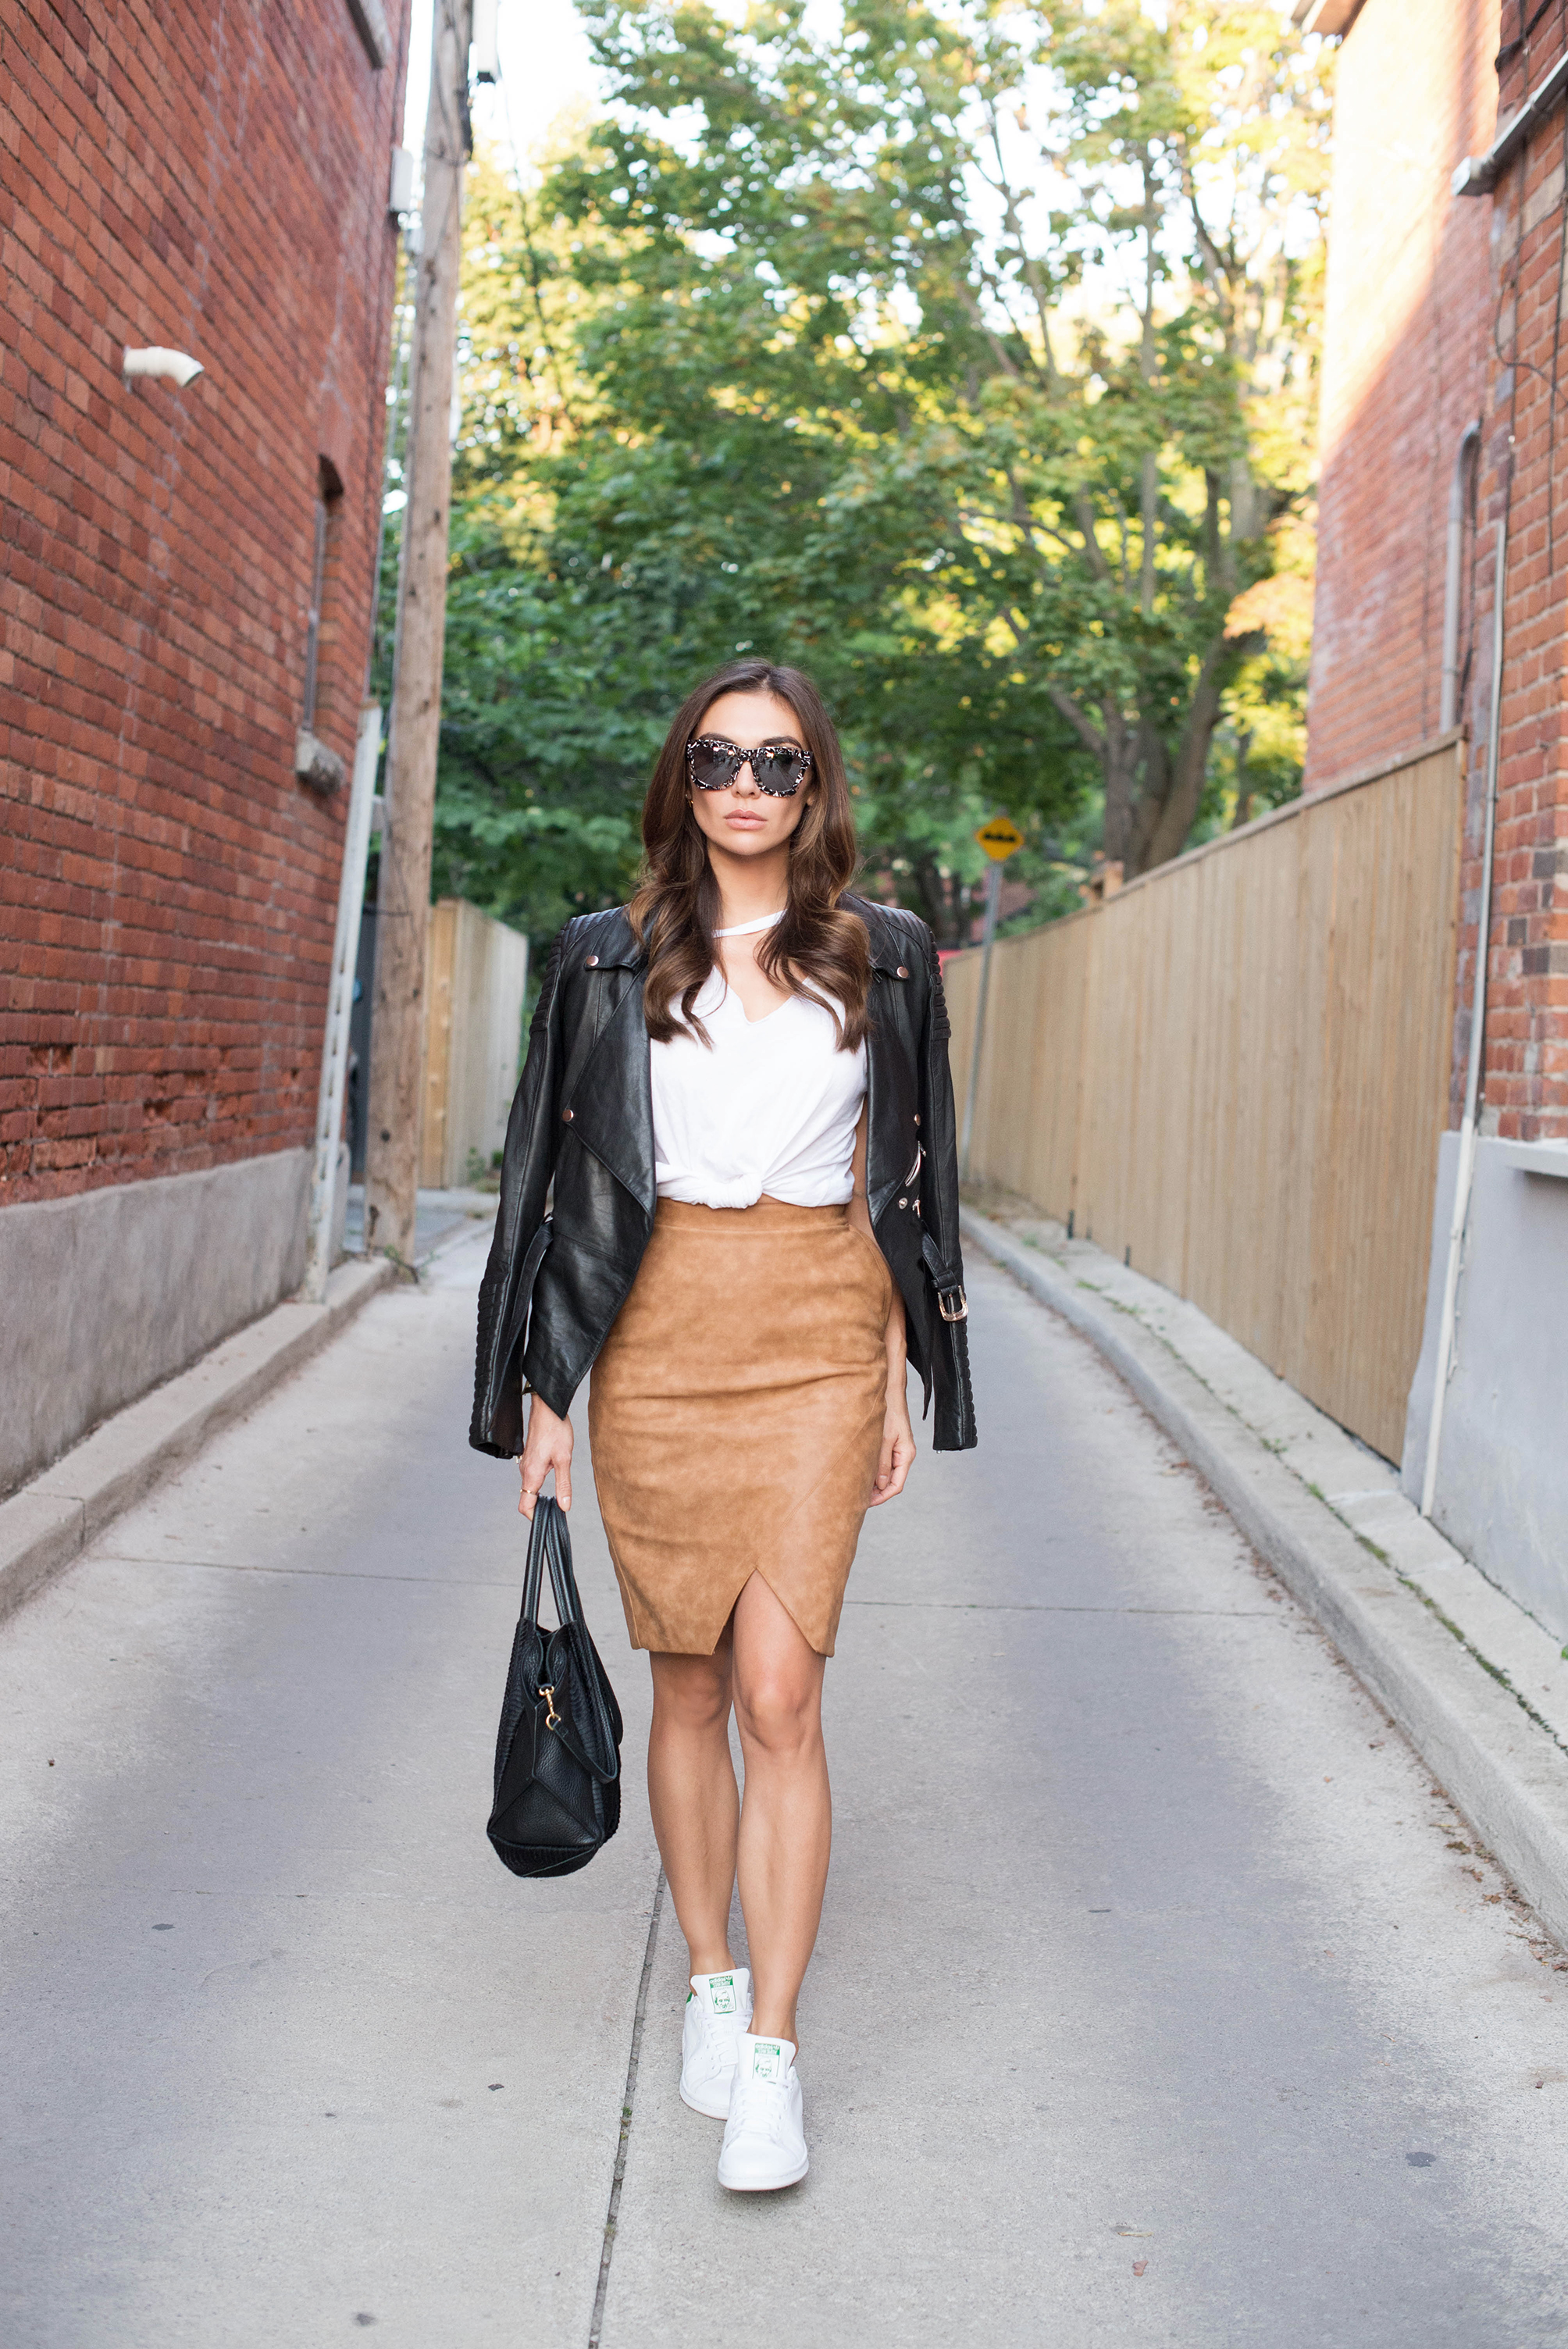 LNA Tank  .   House of CB Skirt  .   Stan Smith Shoes  .   Oliveve Bag  .   Valley Sunglasses.